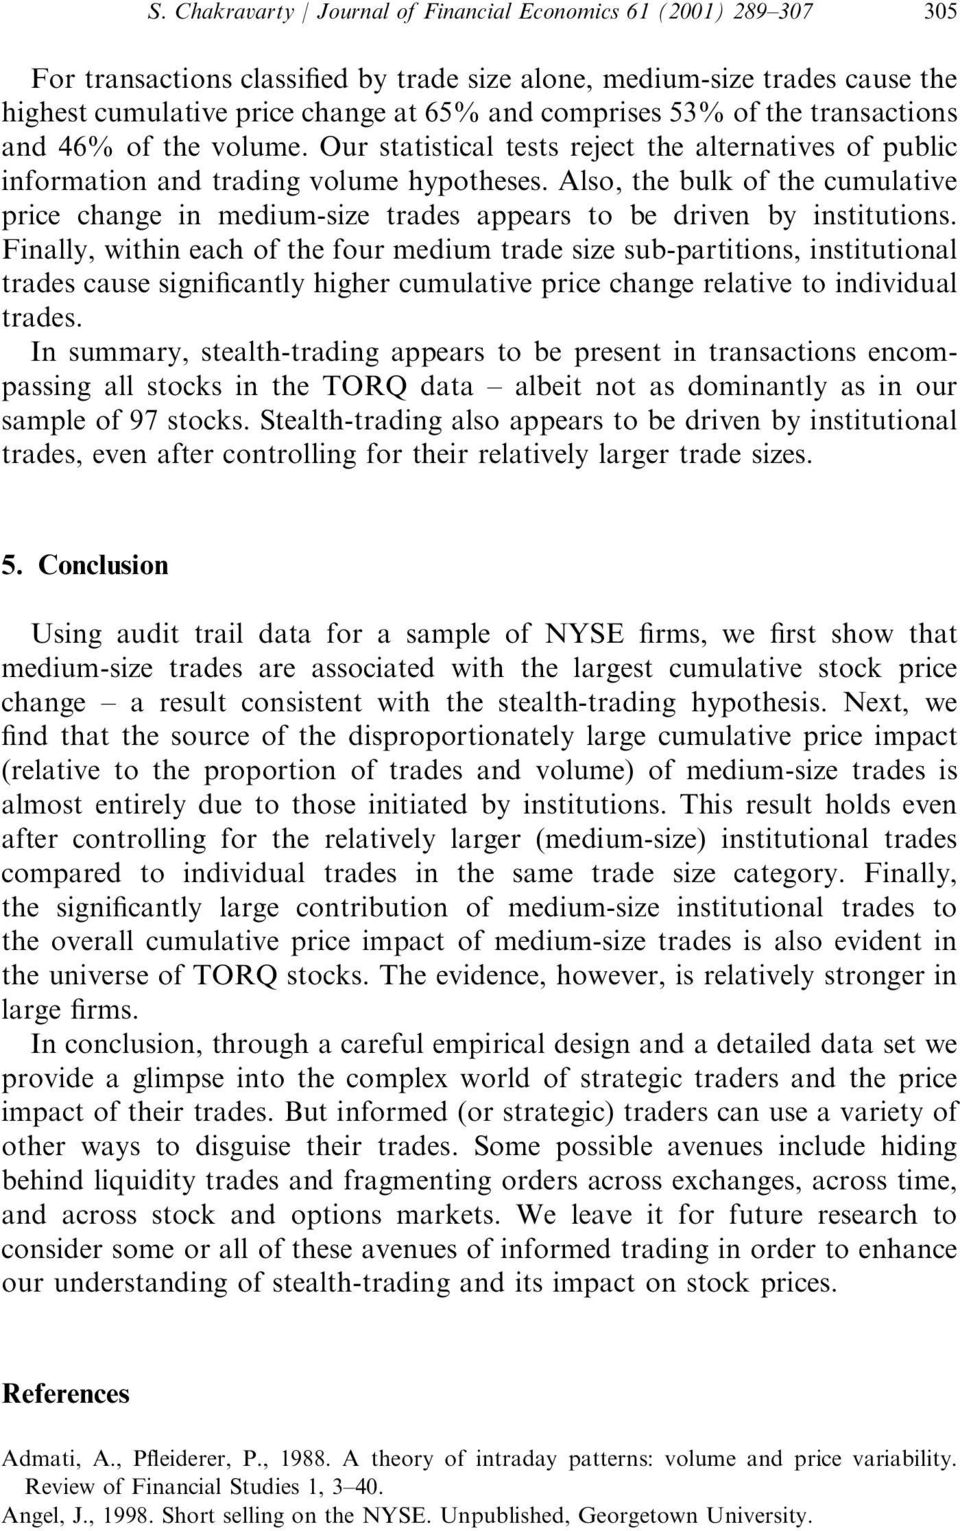 Also, the bulk of the cumulative price change in medium-size trades appears to be driven by institutions.